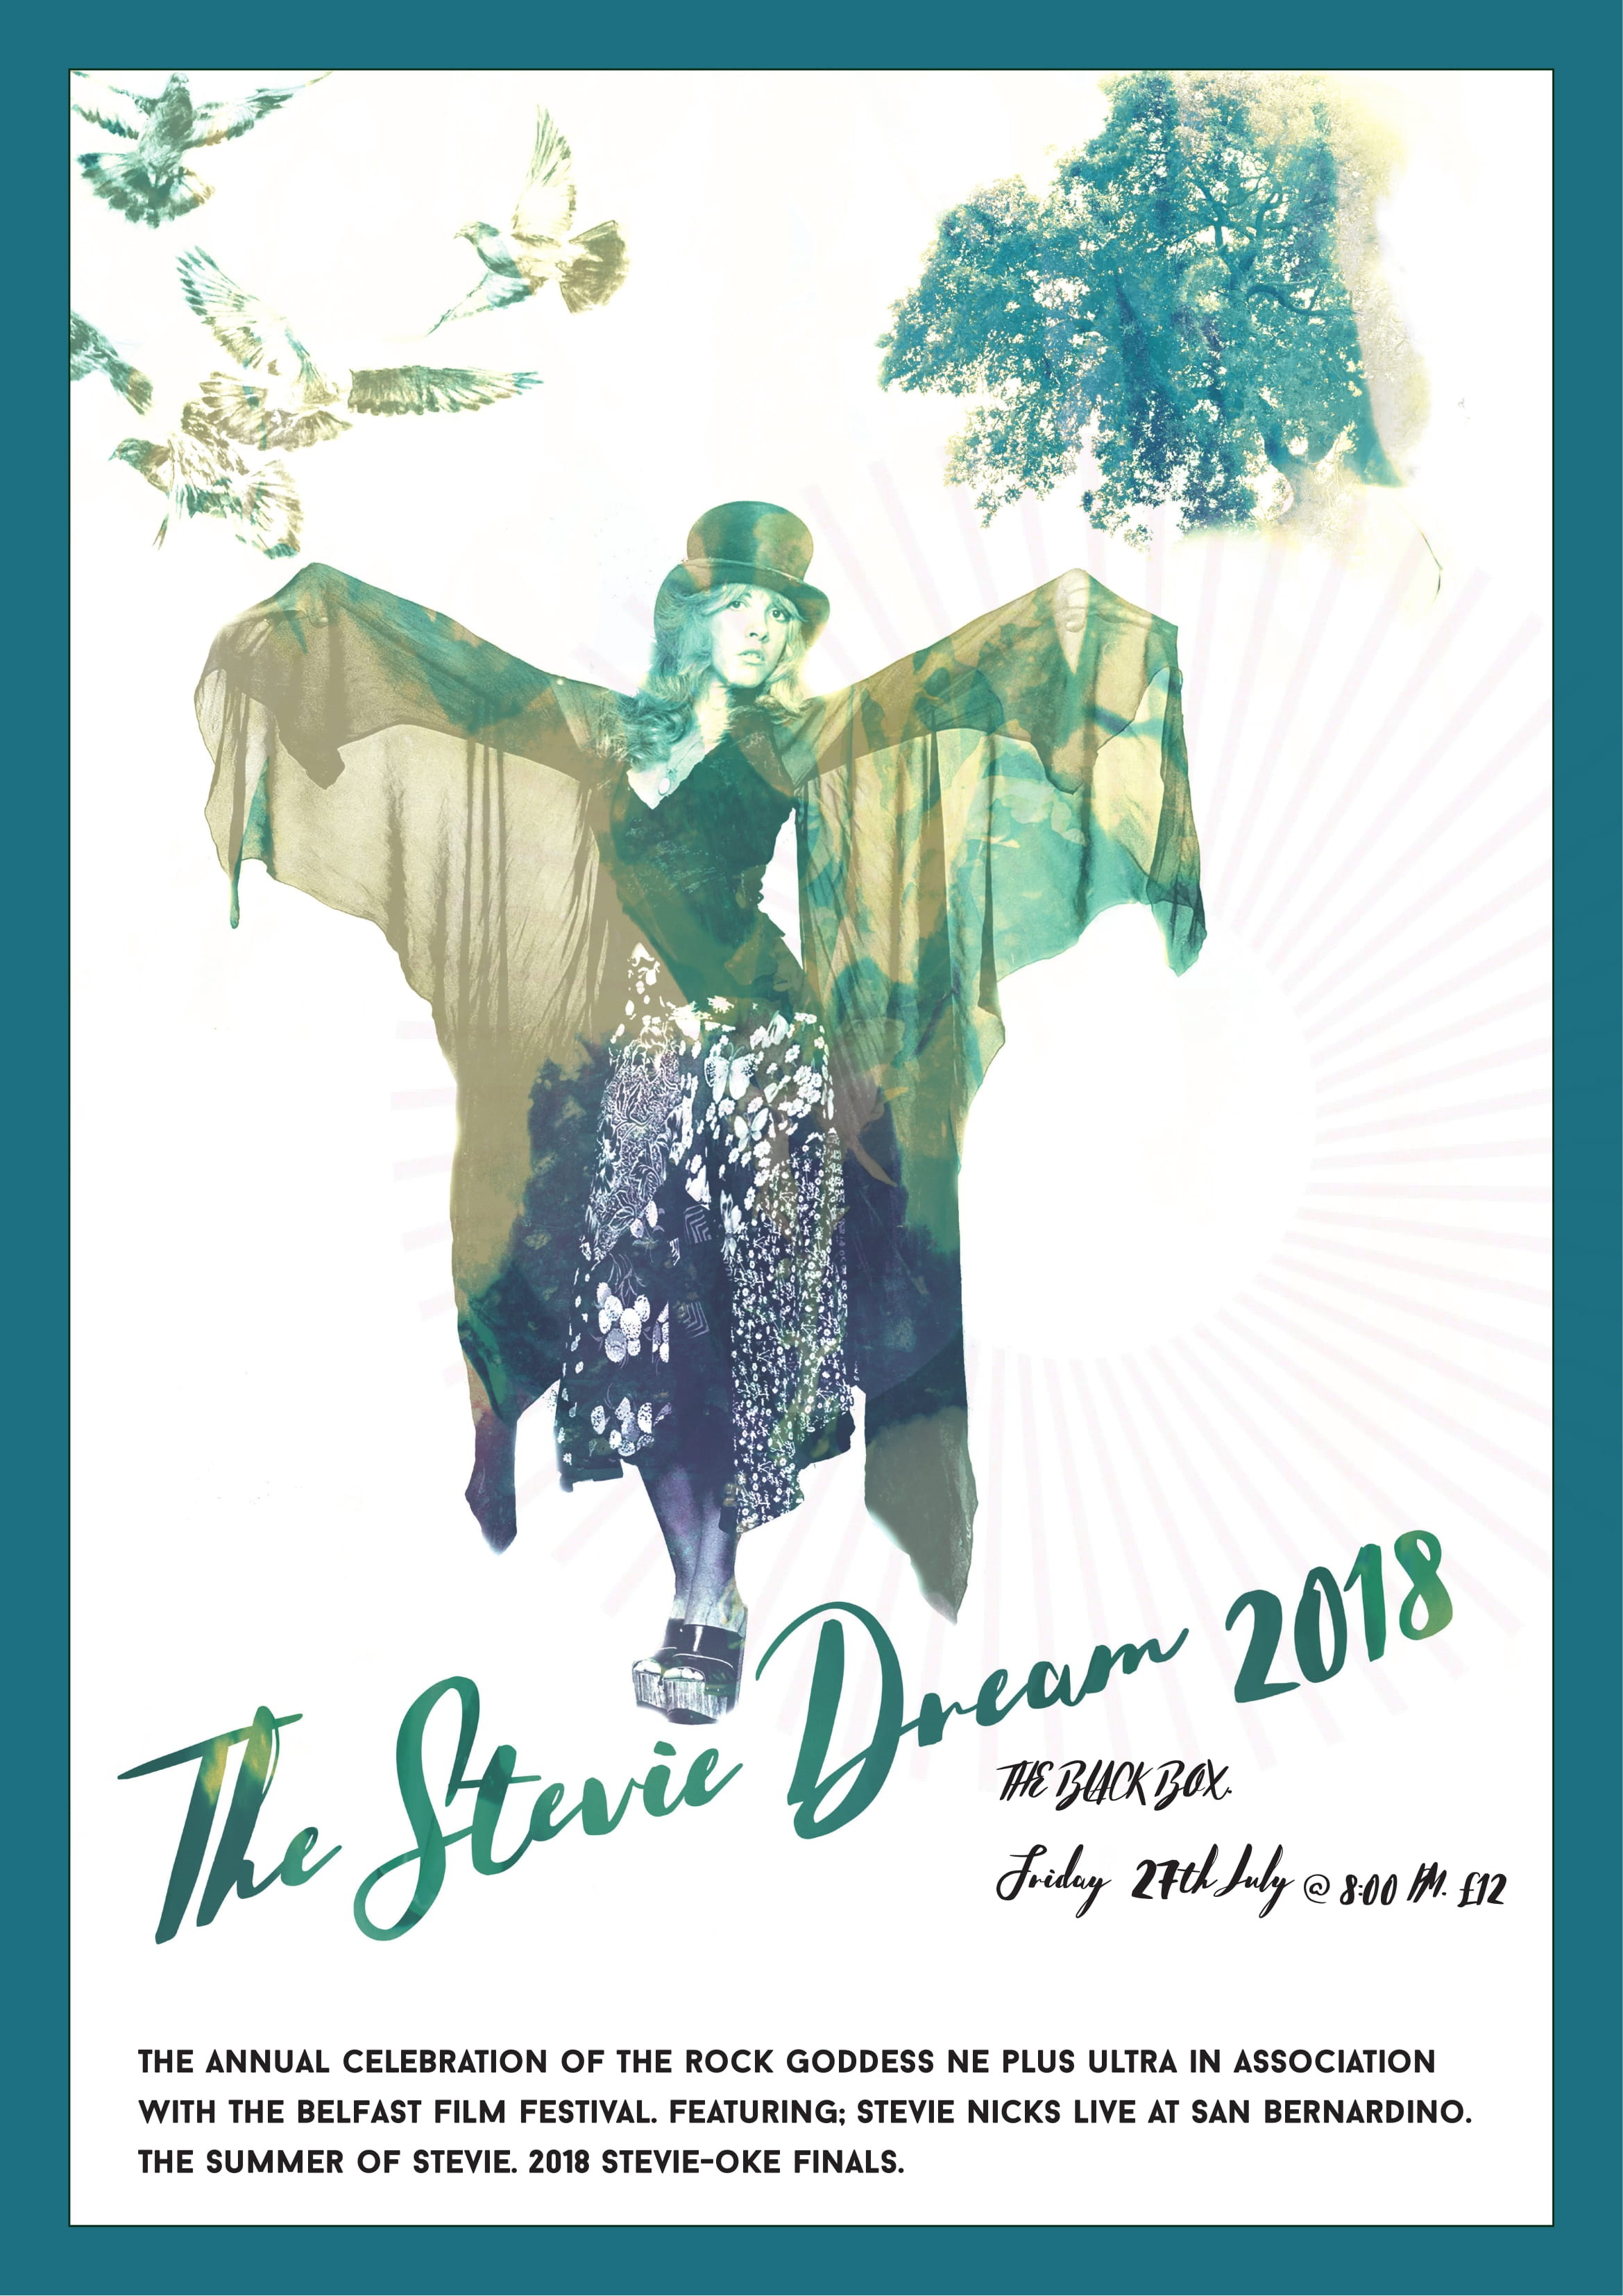 Stevie Dream 2018 @ The Black Box